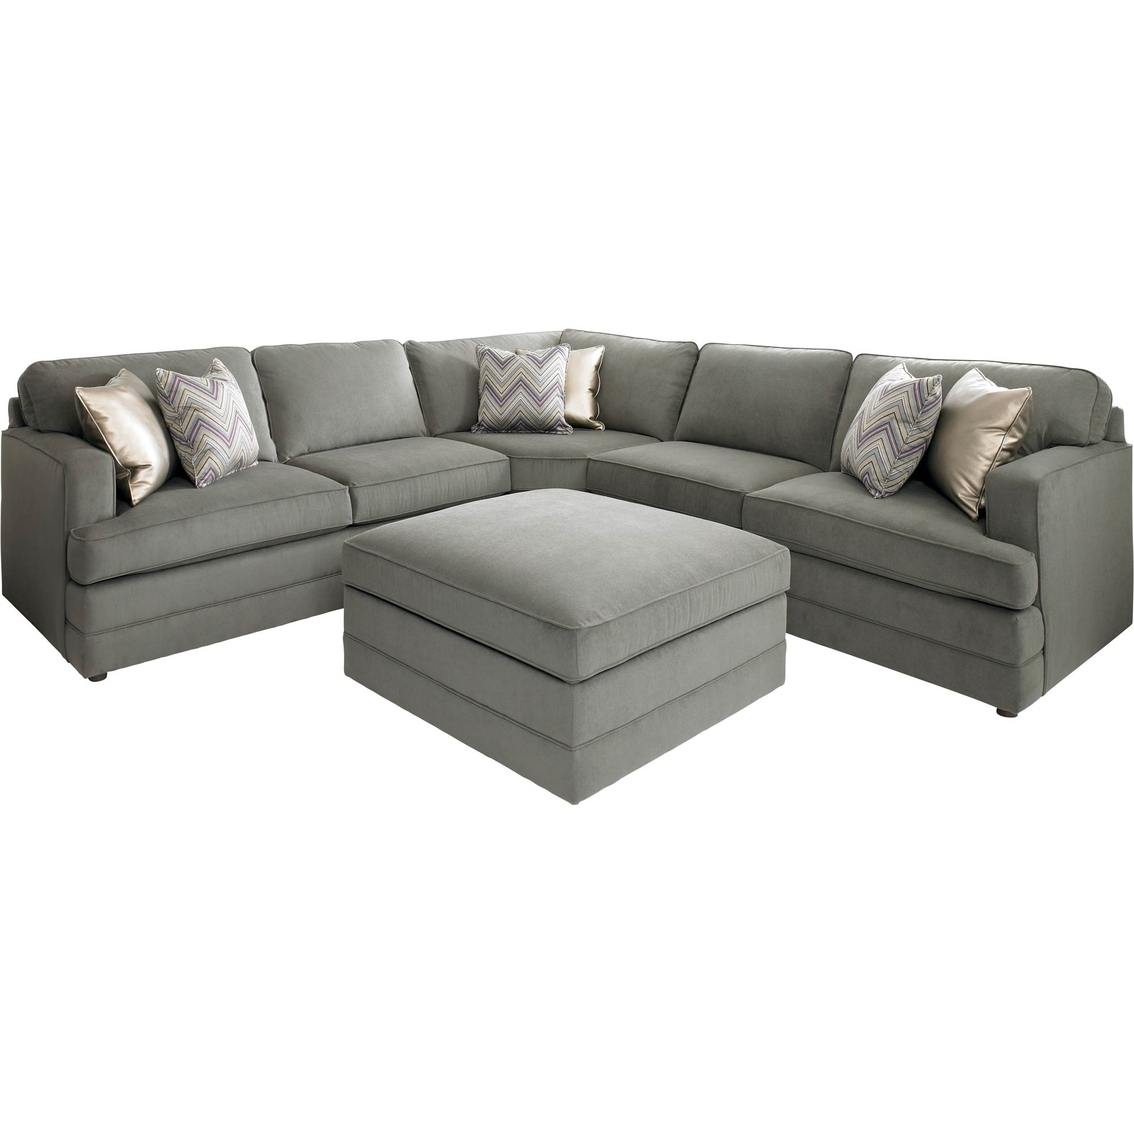 Bassett Dalton L Shaped Sectional Sofa With Ottoman | Making Our Intended For High Point Nc Sectional Sofas (View 7 of 10)